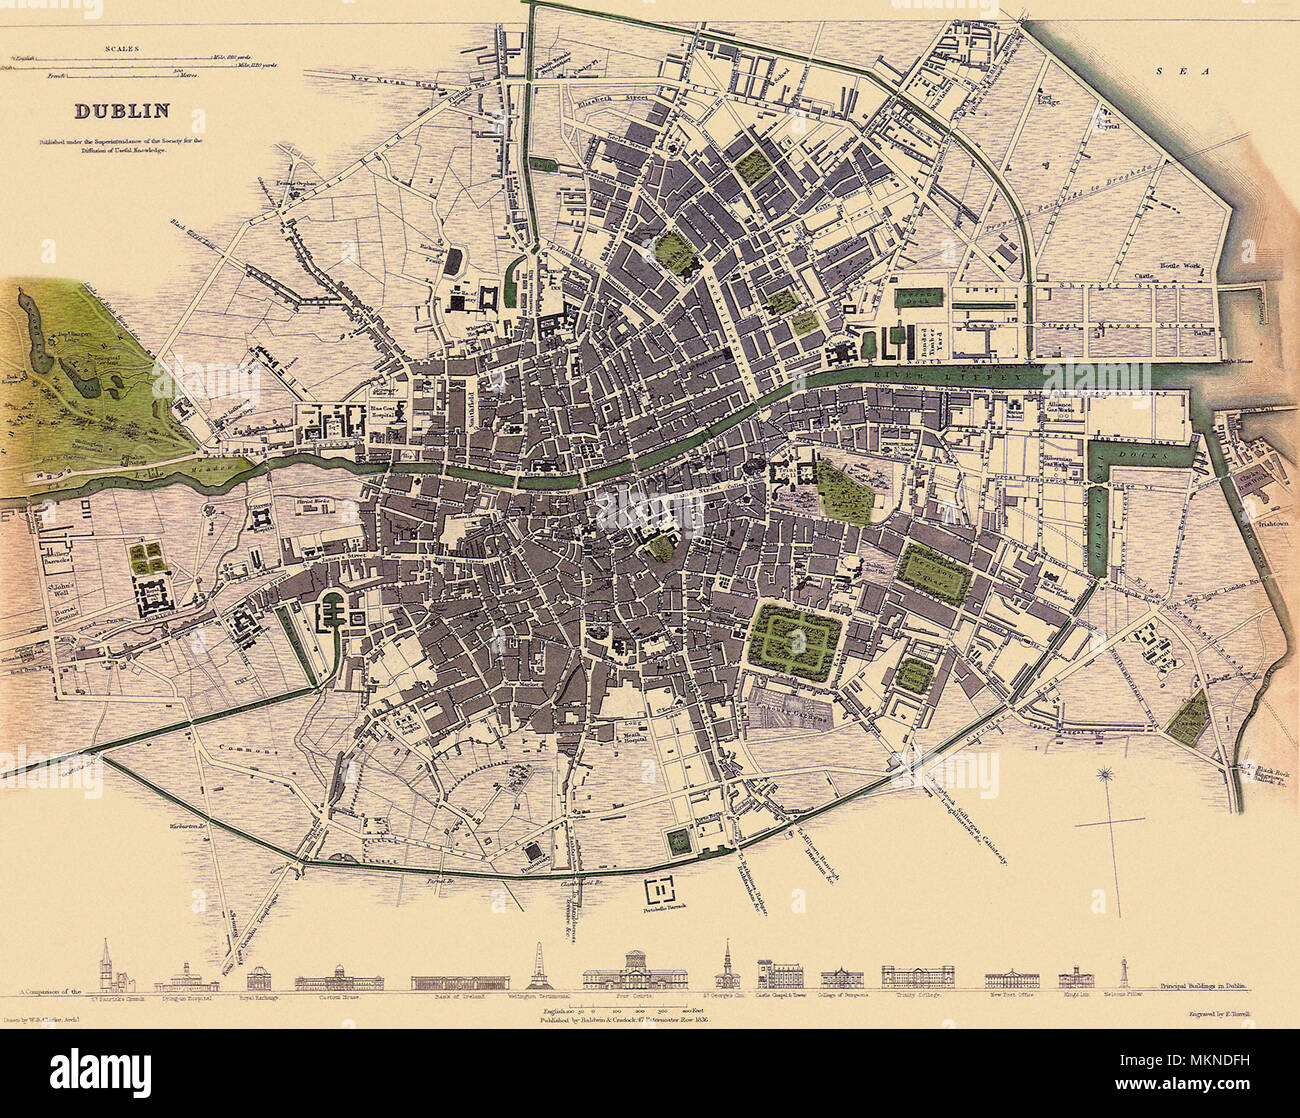 Map of Dublin 1836 Stock Photo: 184253765 - Alamy